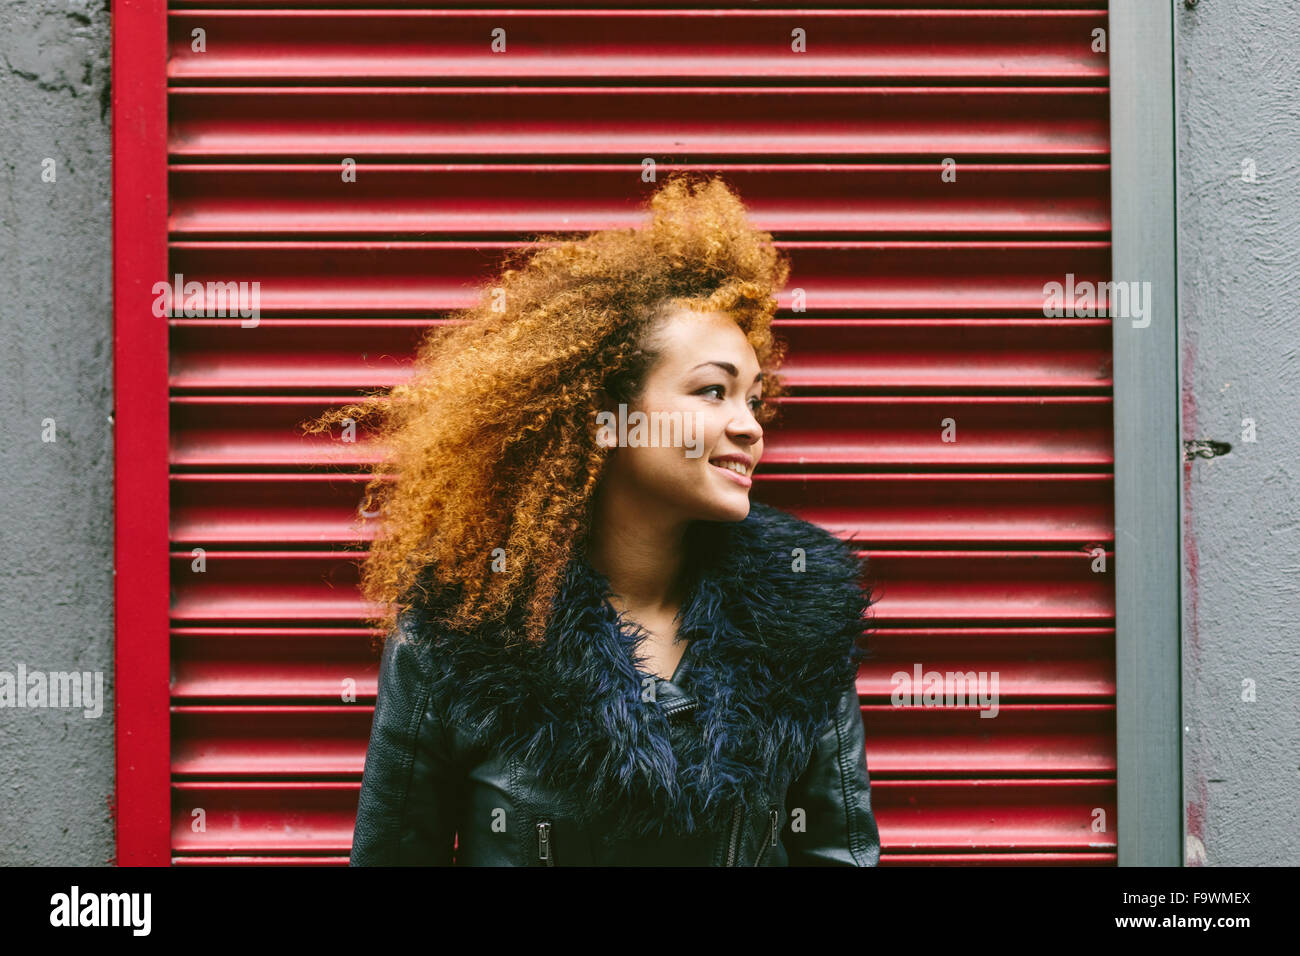 Ireland, Dublin, smiling woman with afro in front of red roller shutter - Stock Image